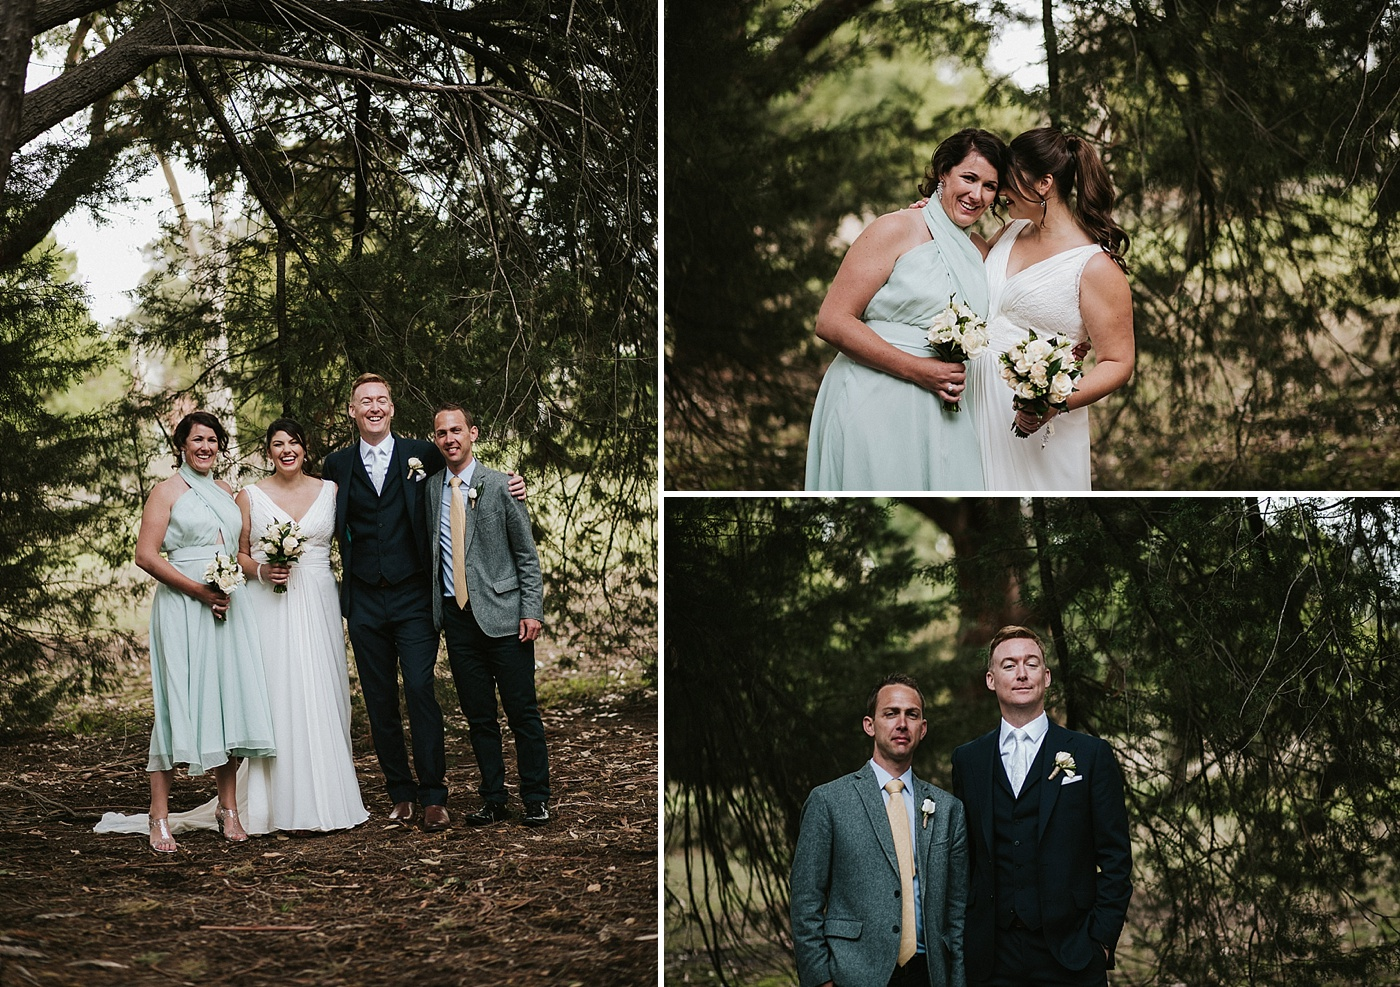 Brooke&David_Melbourne-Quirky-Relaxed-Fun-Casual-Backyard-Wedding_Melbourne-Wedding-Photography-62